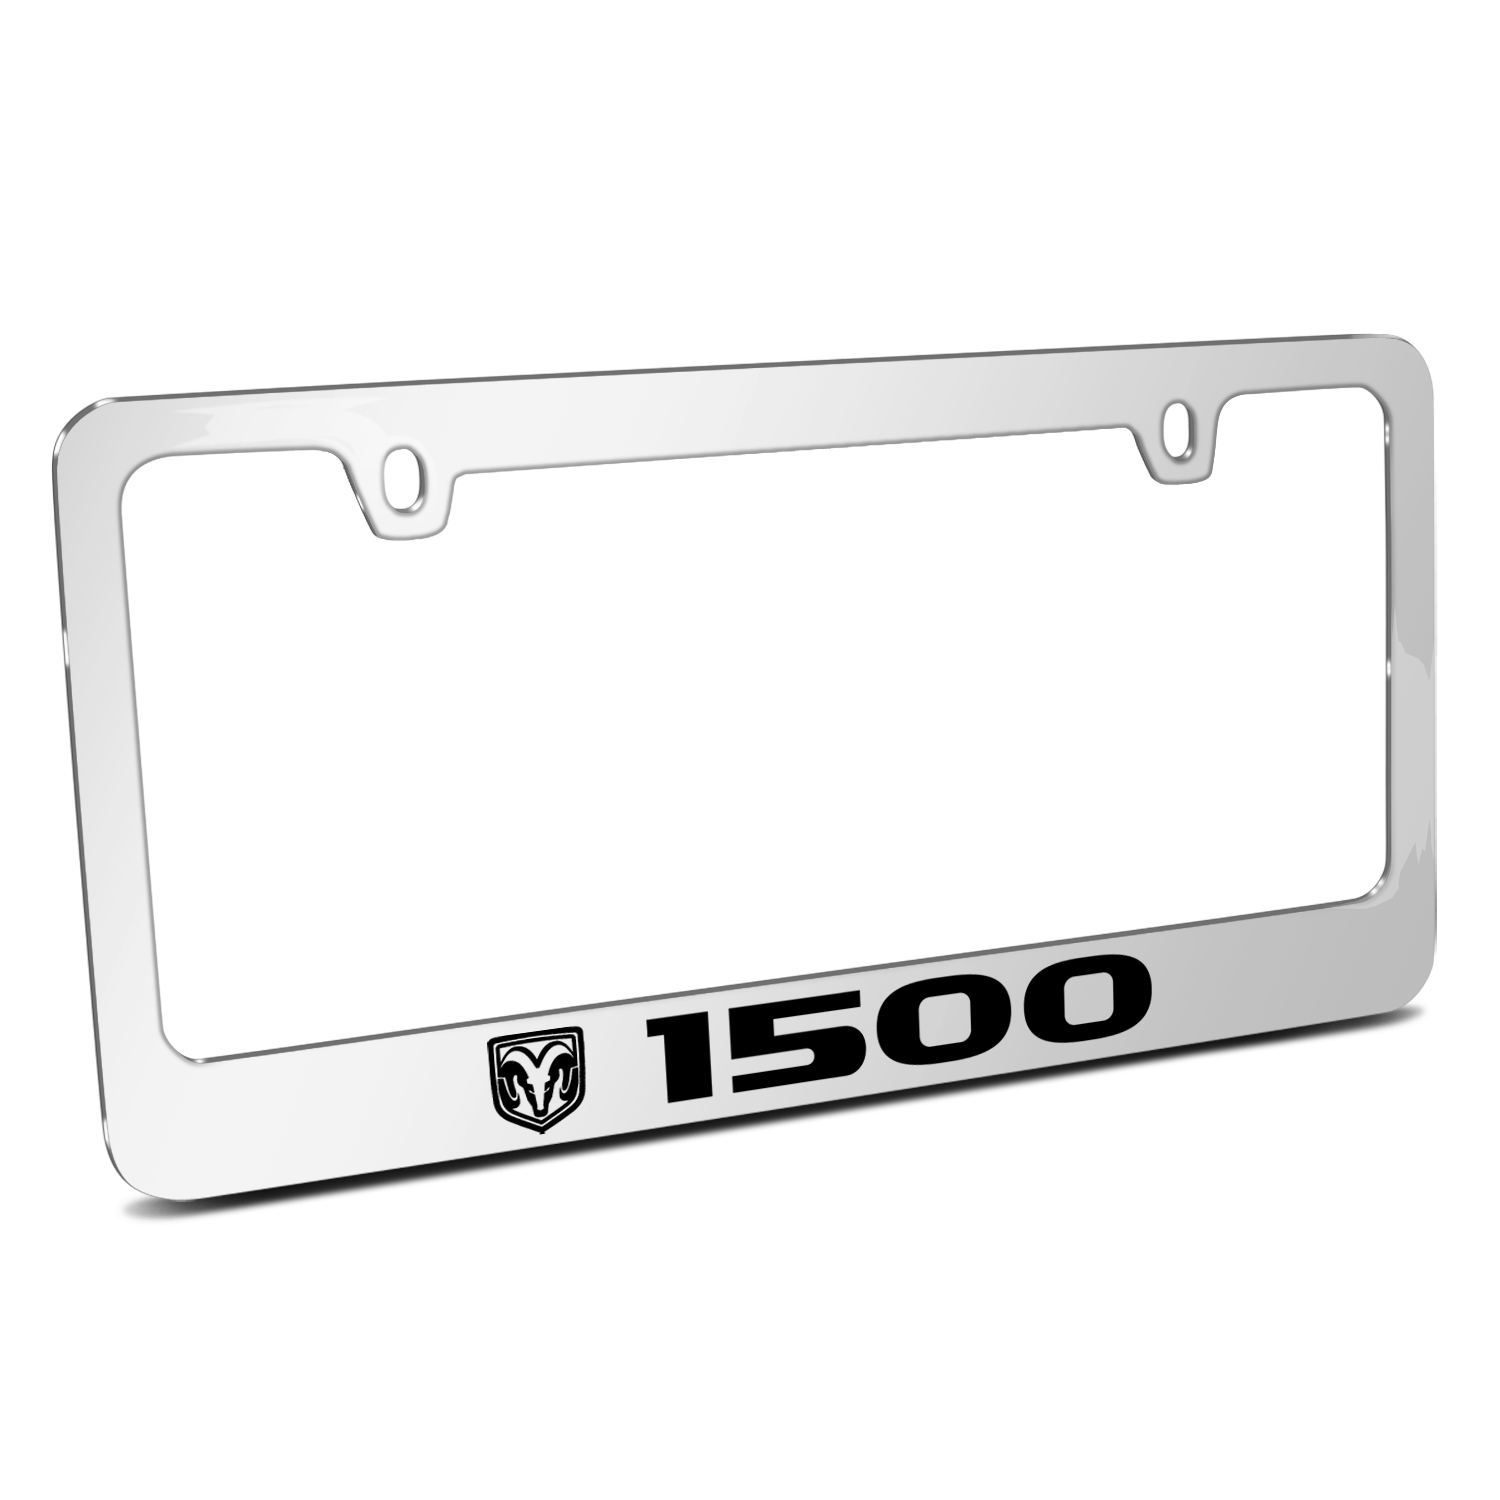 RAM 1500 Logo Mirror Chrome Metal License Plate Frame